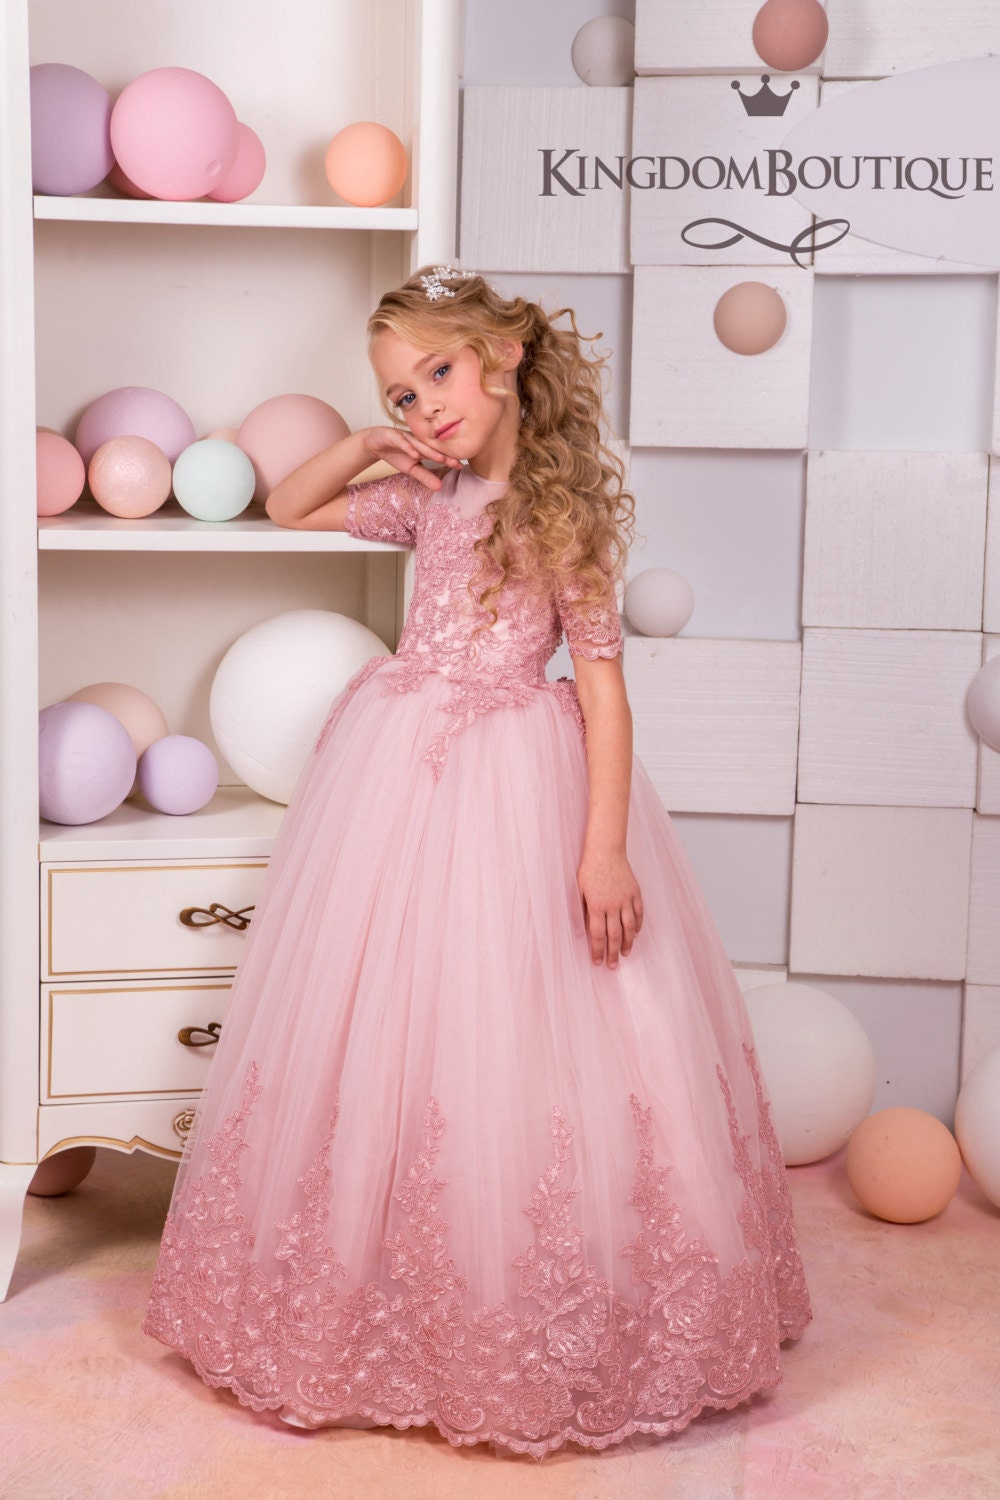 Blush Pink Lace Tulle Flower Girl Dress Wedding Party Etsy